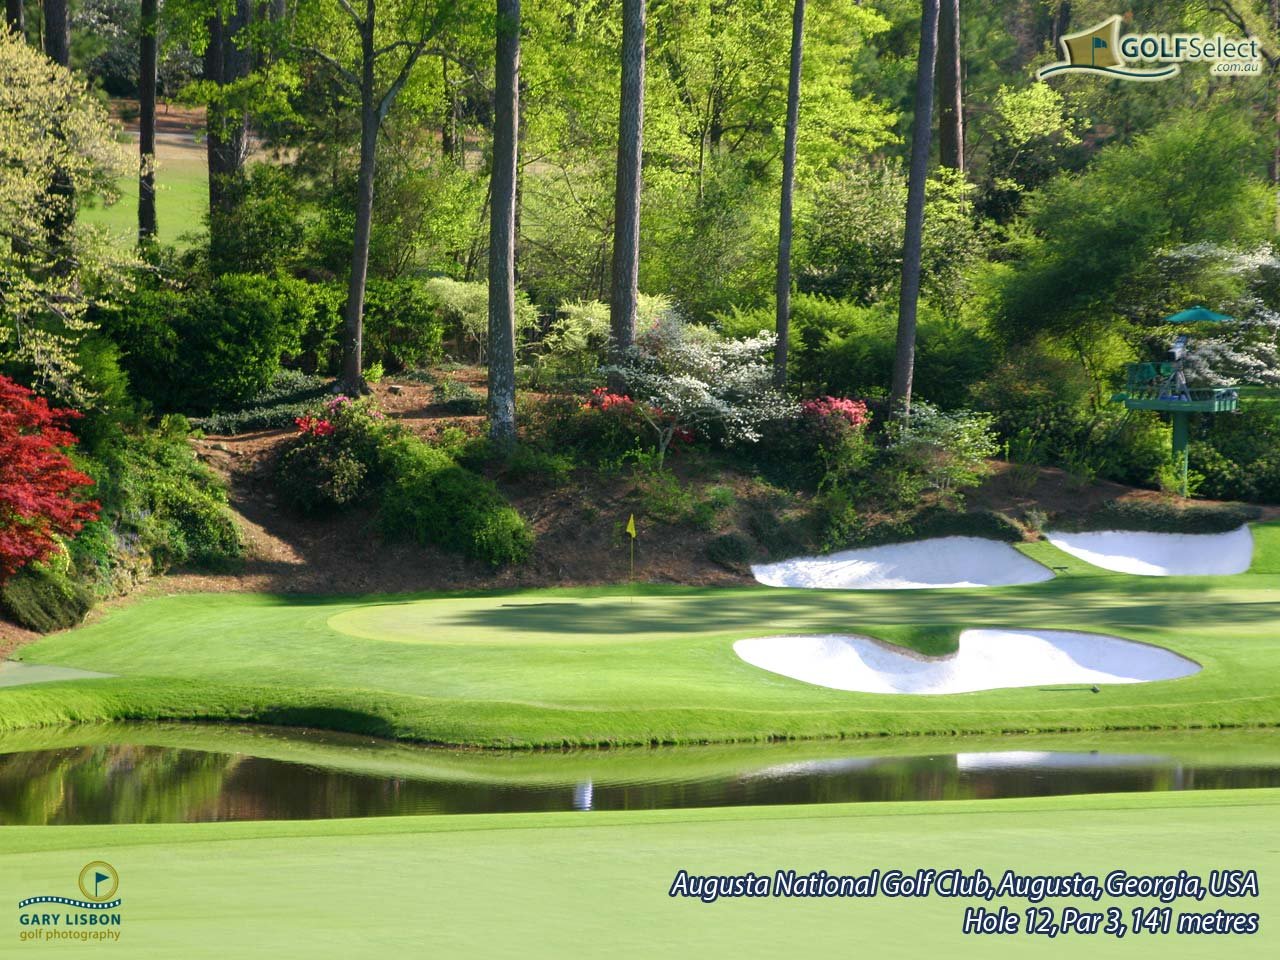 Golf Course Wallpaper 3448 Hd Wallpapers in Sports   Imagescicom 1280x960